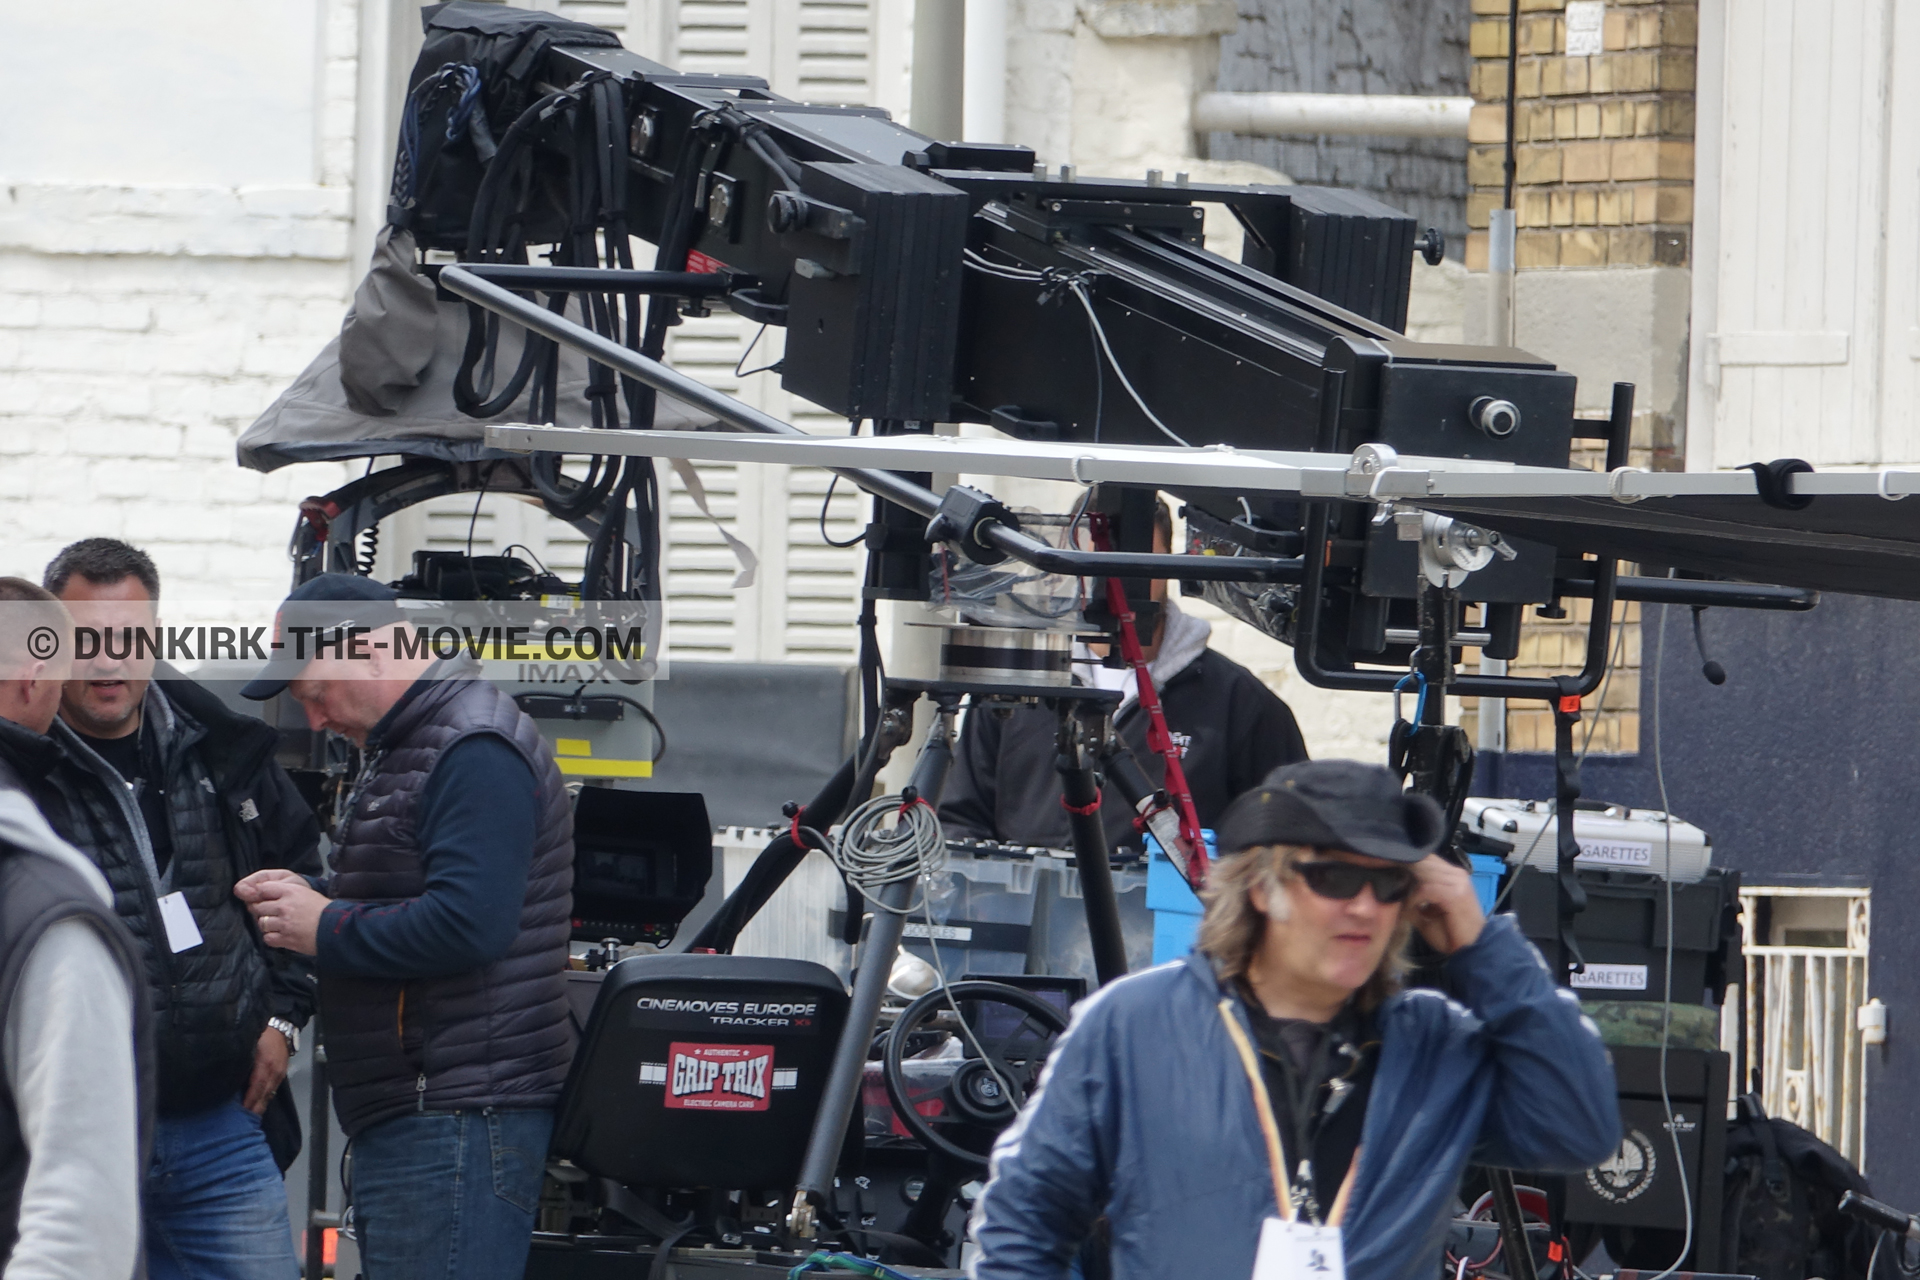 Picture with IMAX camera, Belle Rade street, technical team,  from behind the scene of the Dunkirk movie by Nolan